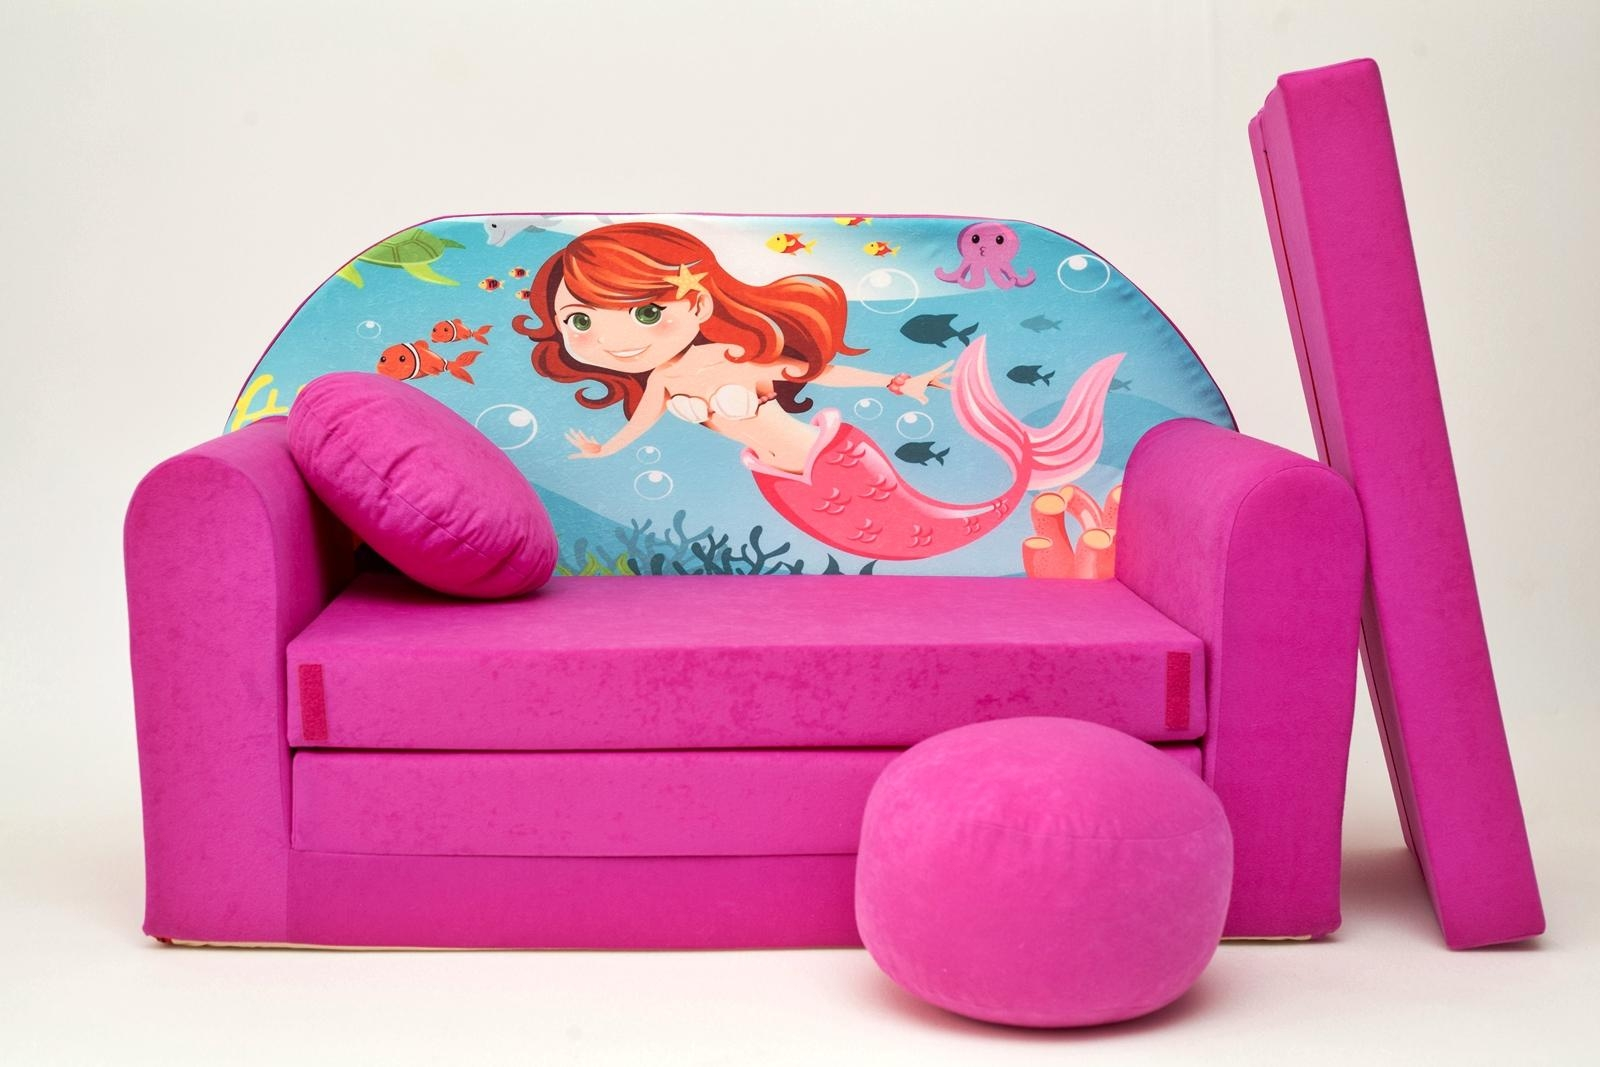 How To Choose Childrens Sofa Chair — Home Design Stylinghome With Childrens Sofa Bed Chairs (View 5 of 20)